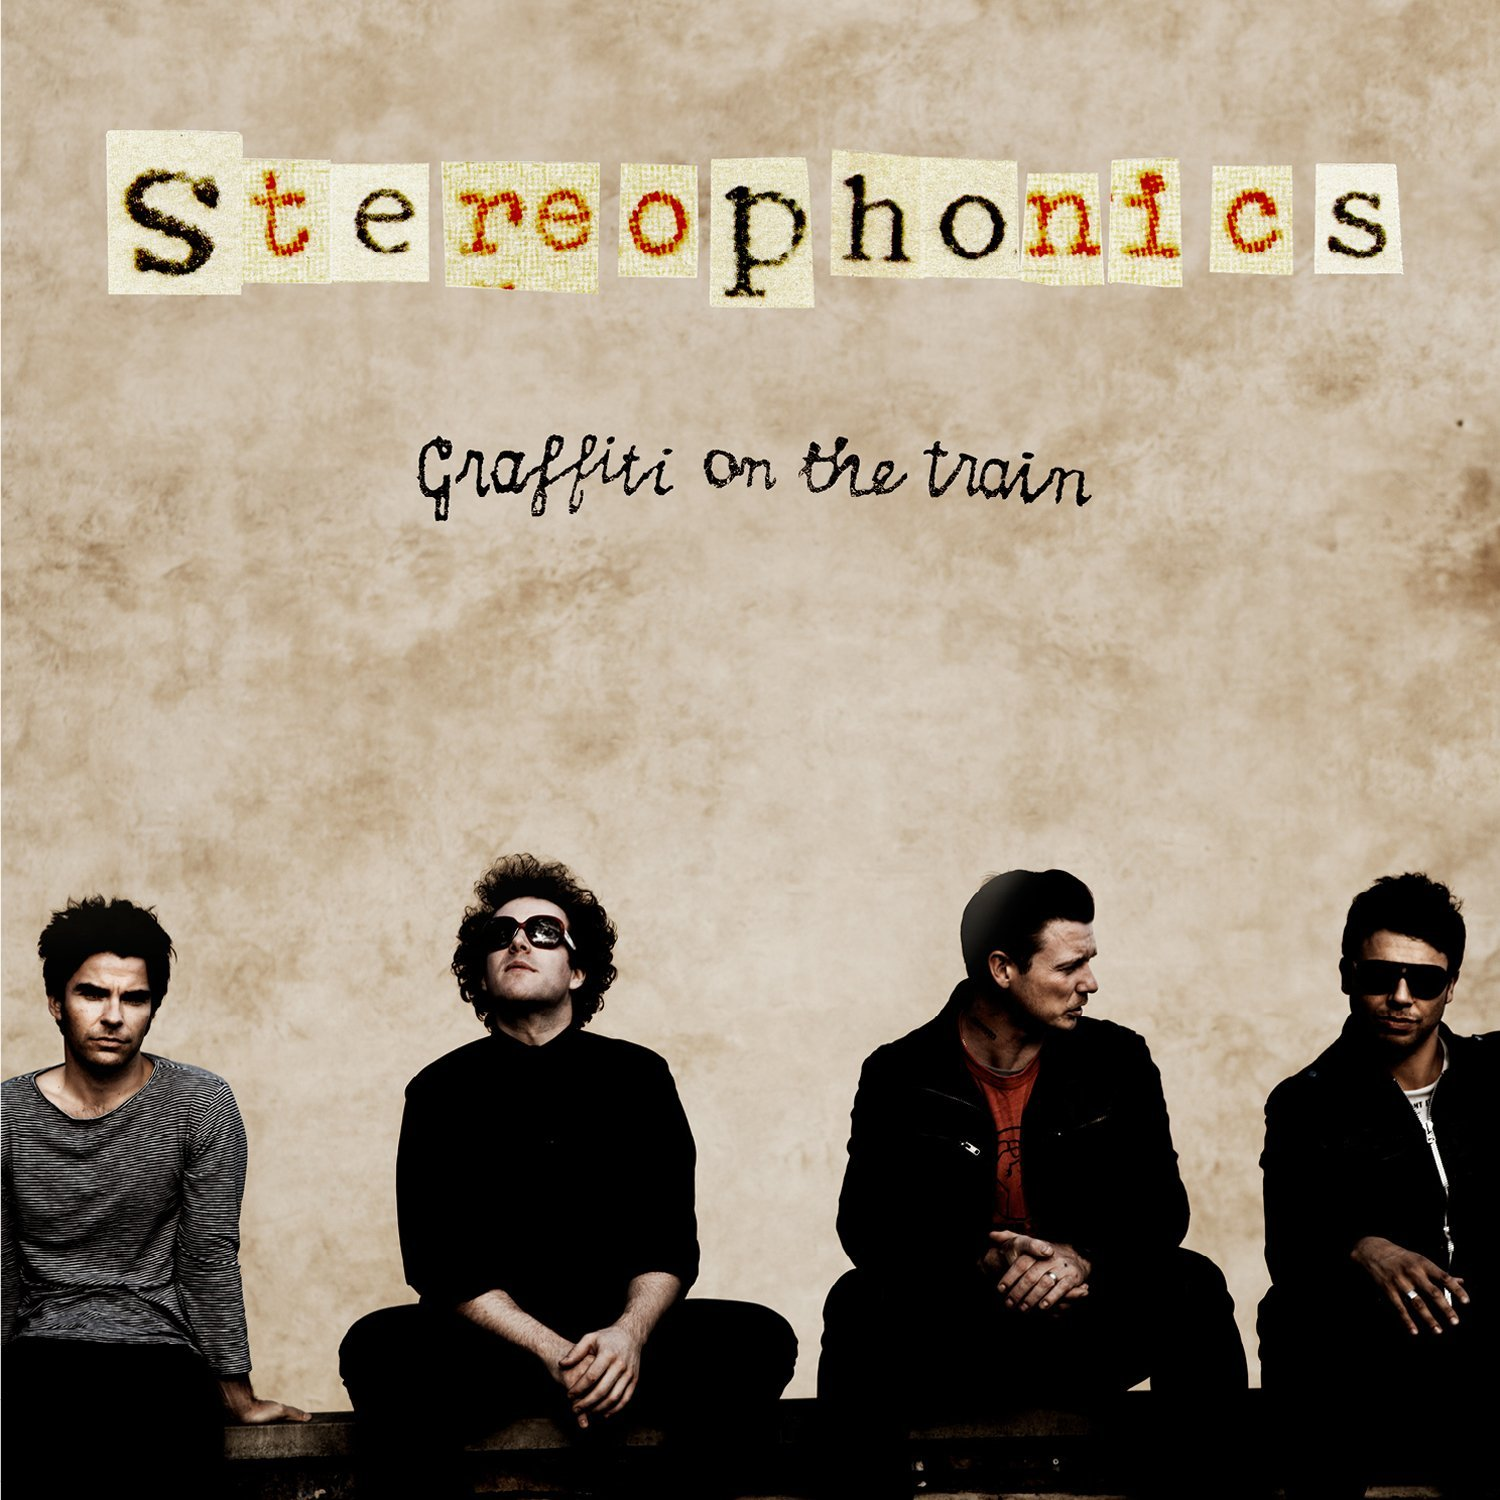 Stereophonics- Graffiti On The Train